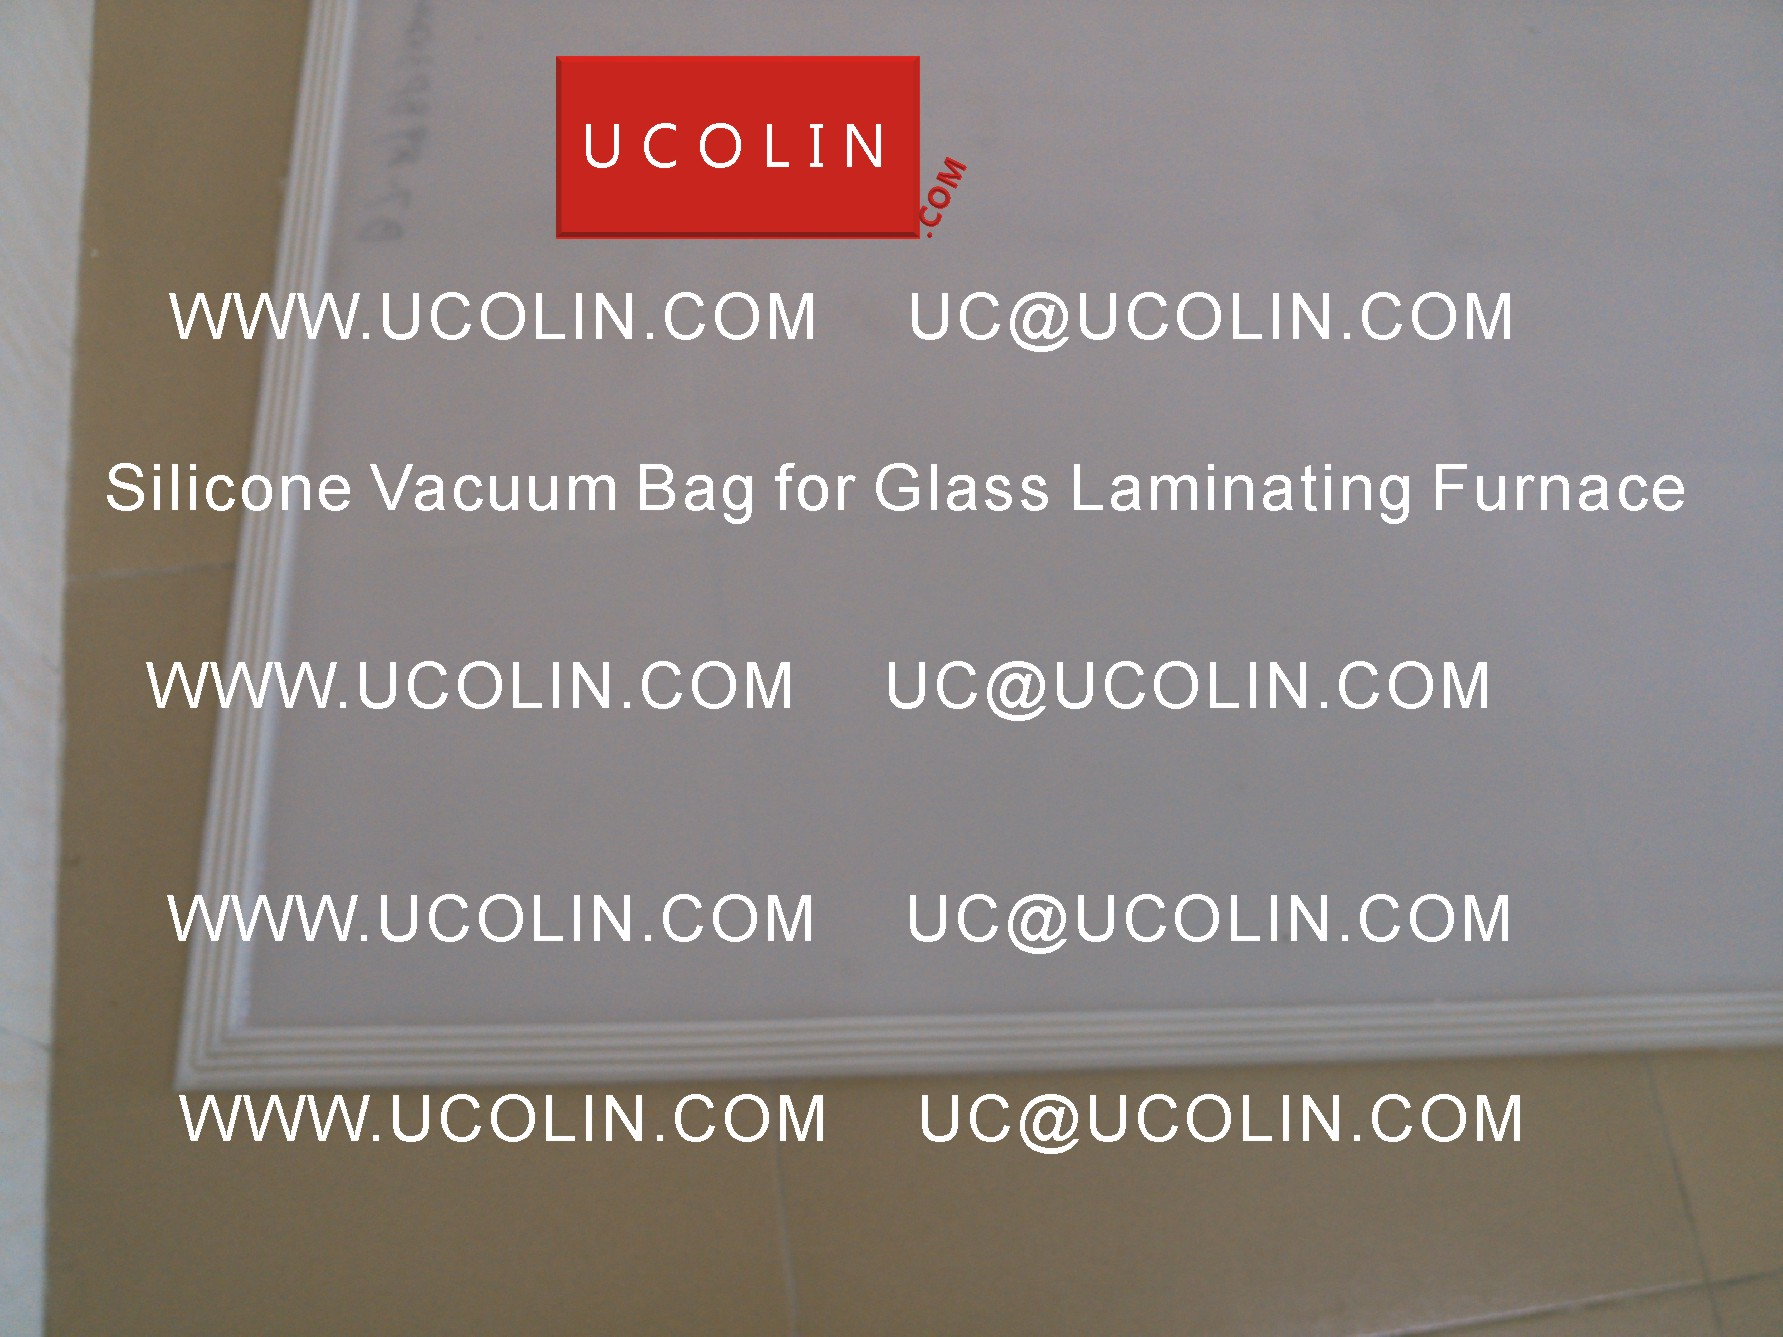 01 Silicone Vacuum Bag for Safety Glass Laminating Furnace